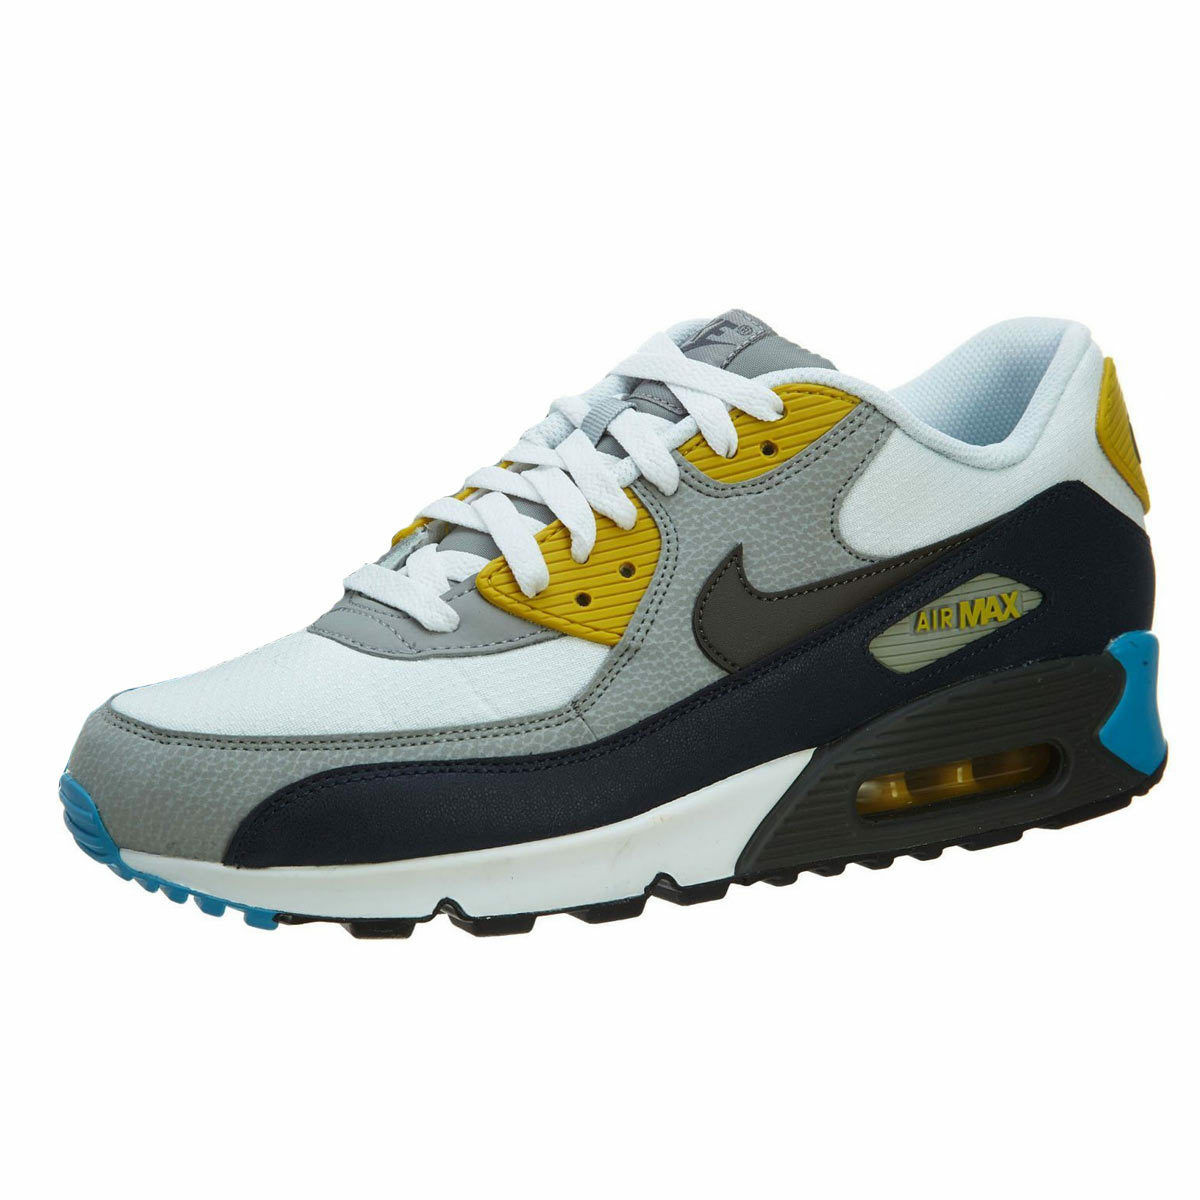 NIKE AIR MAX homme 90 ESSENTIAL blanc- Gris -Bleu homme MAX Sneakers Trainers 283331